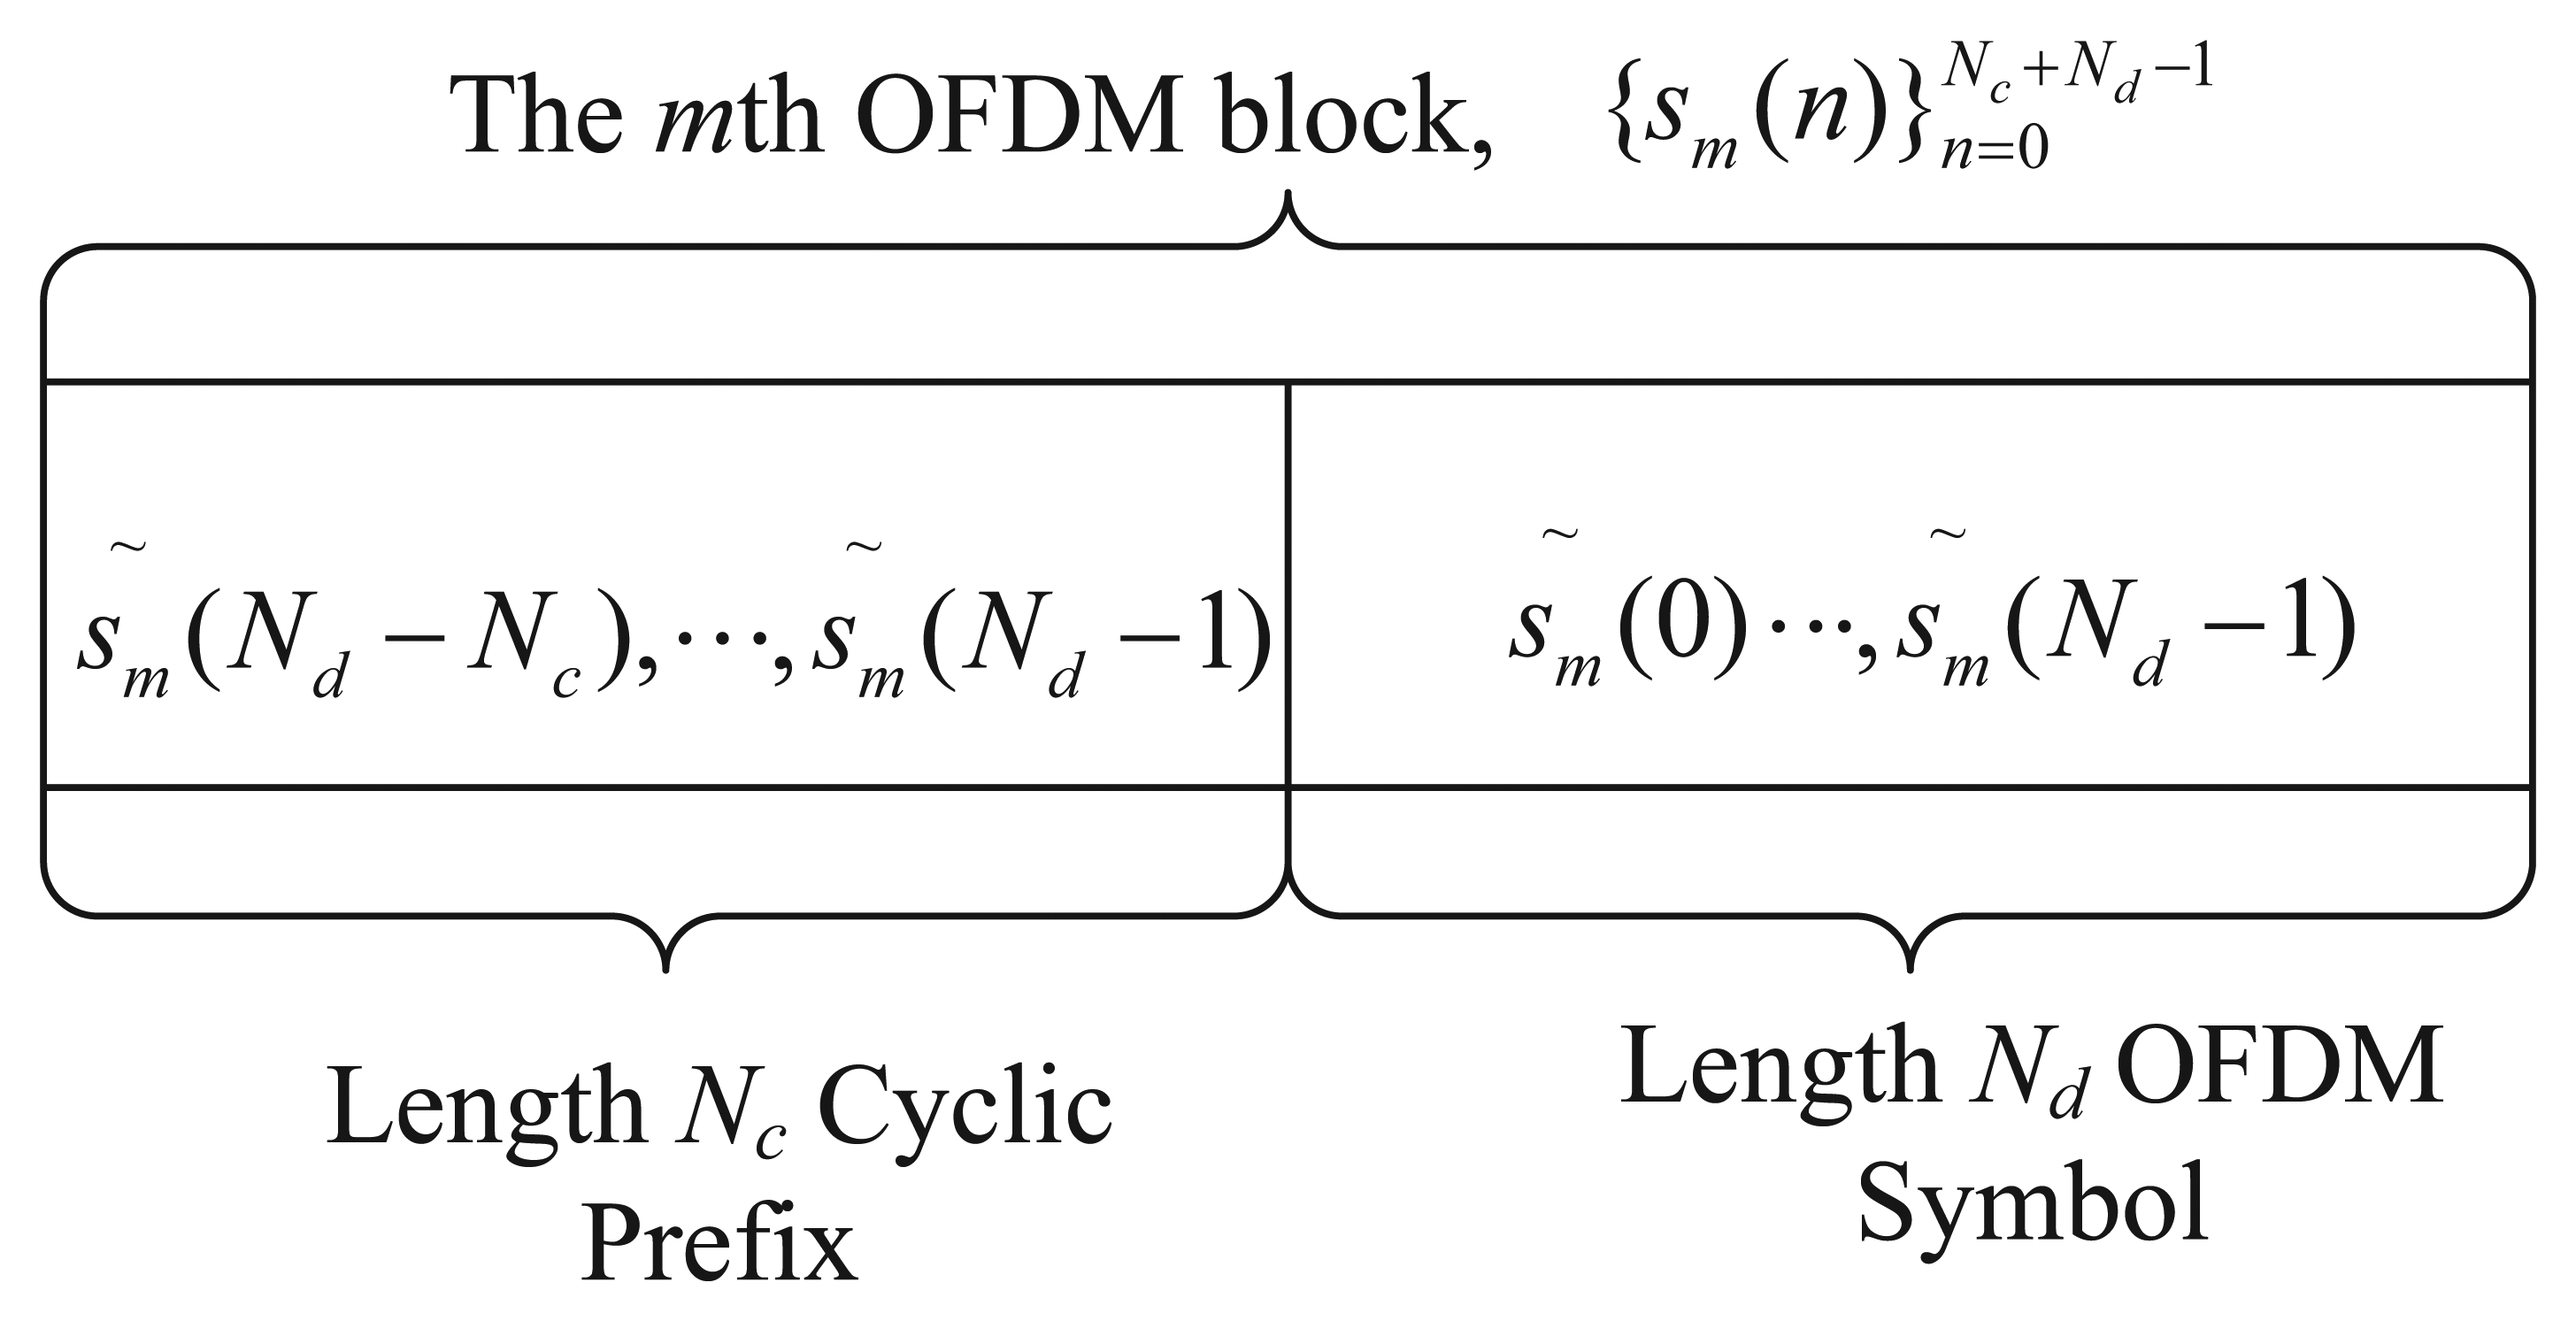 cognitive radio thesis International journal of next-generation networks (ijngn) vol6, no1, march 2014 doi : 105121/ijngn20146104 43 cognitive radio and dynamic spectrum access.